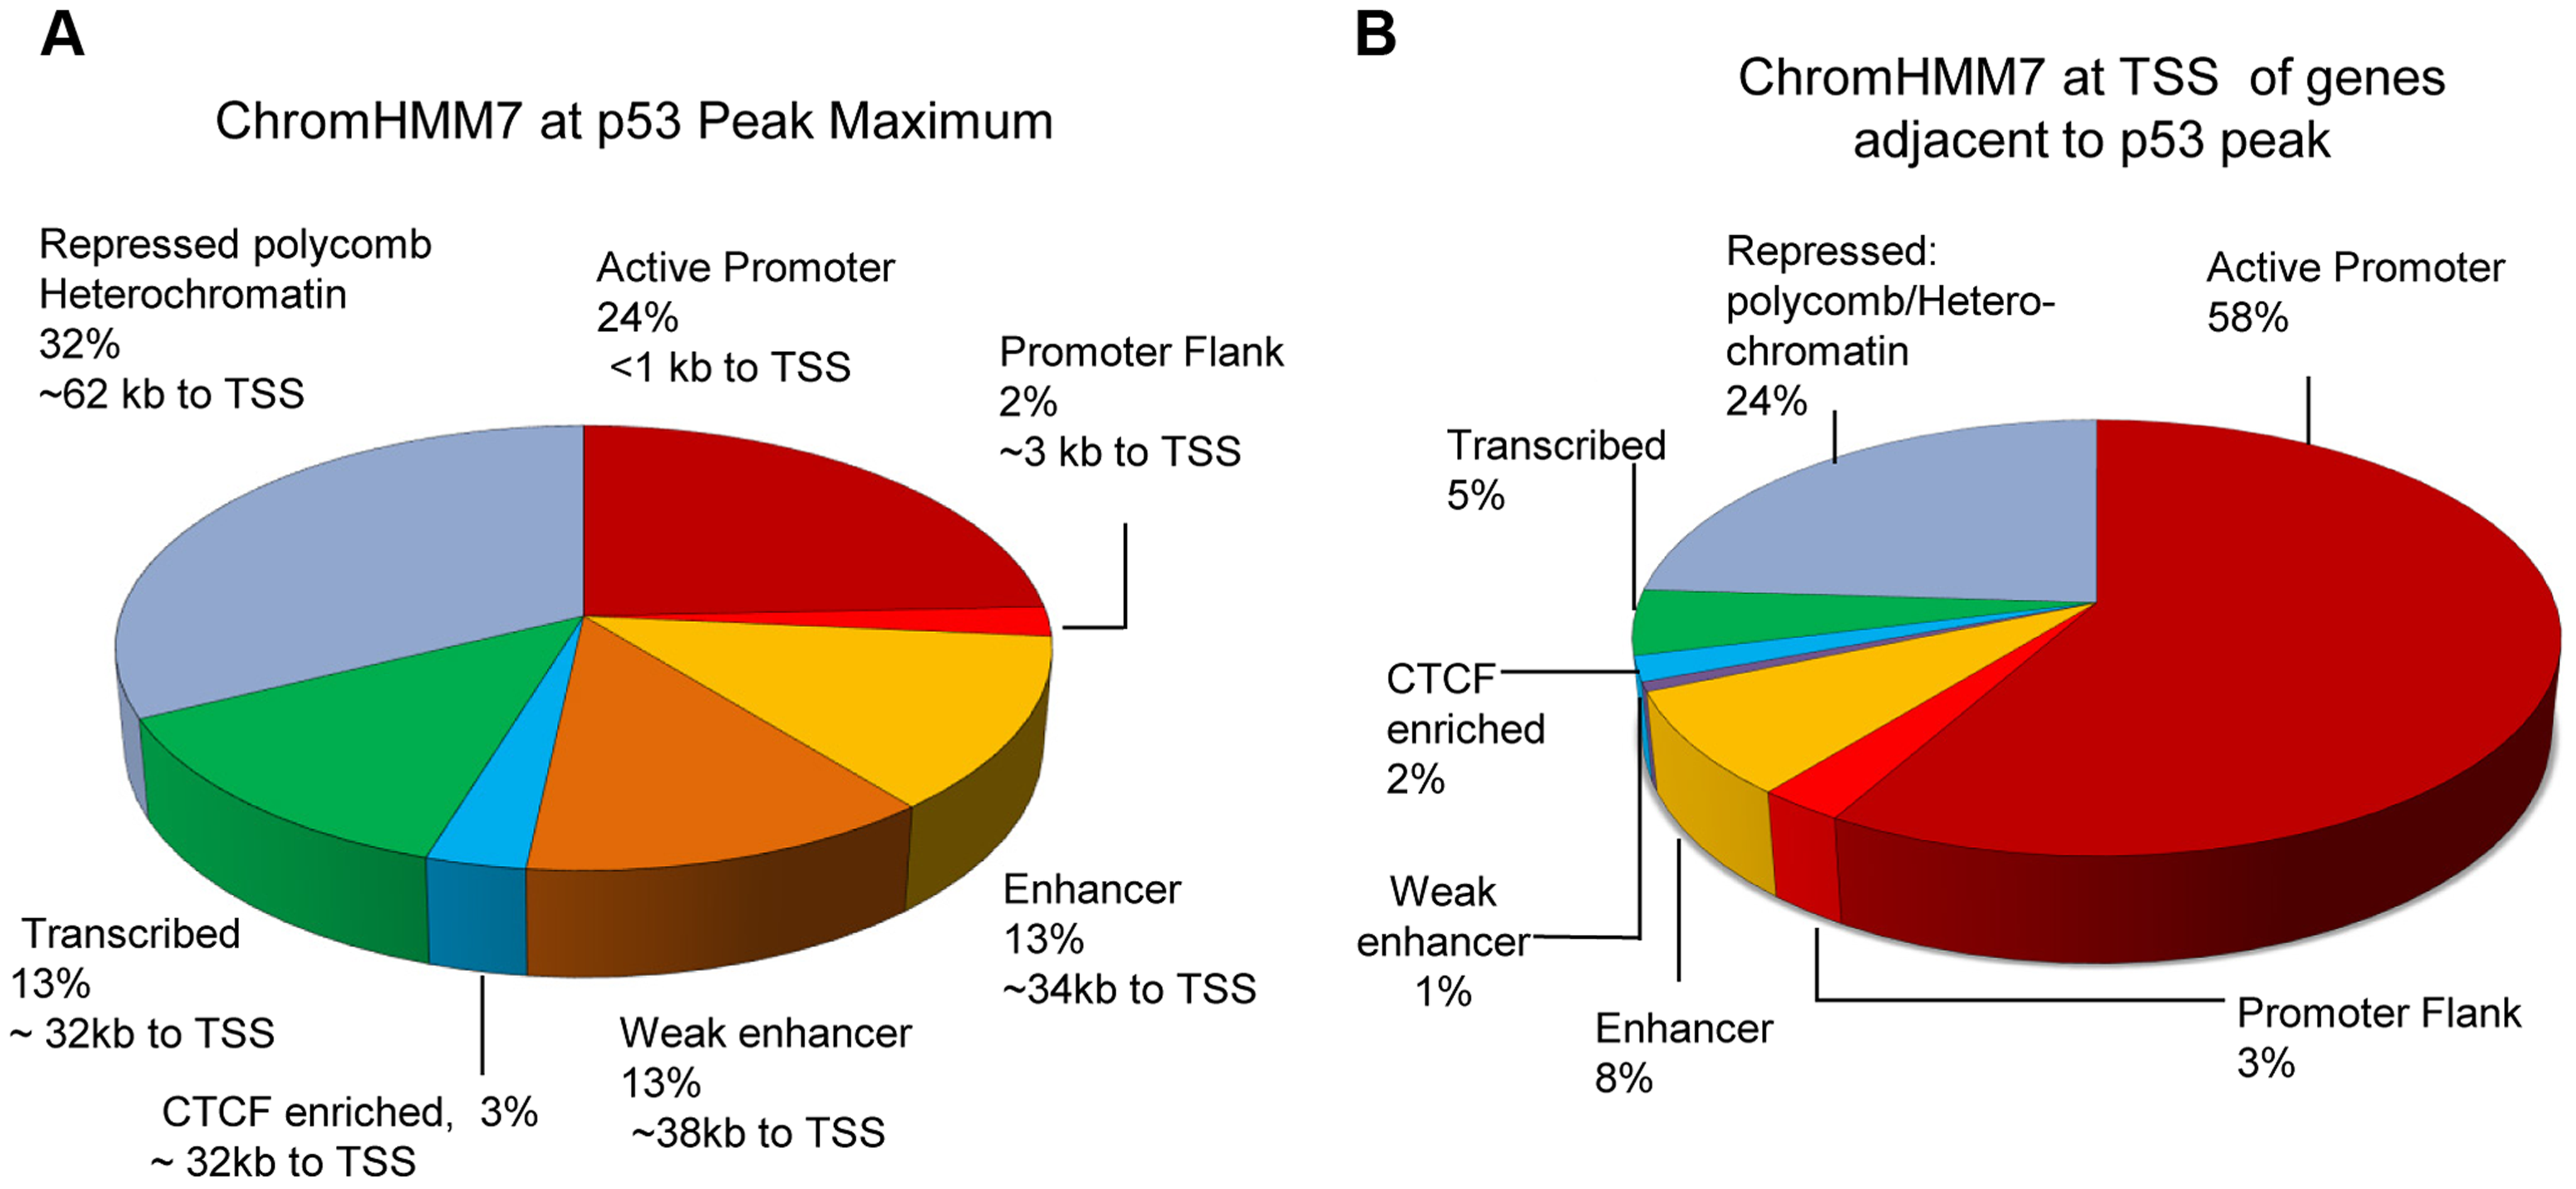 Distribution of p53 peaks among ENCODE combined chromatin states.